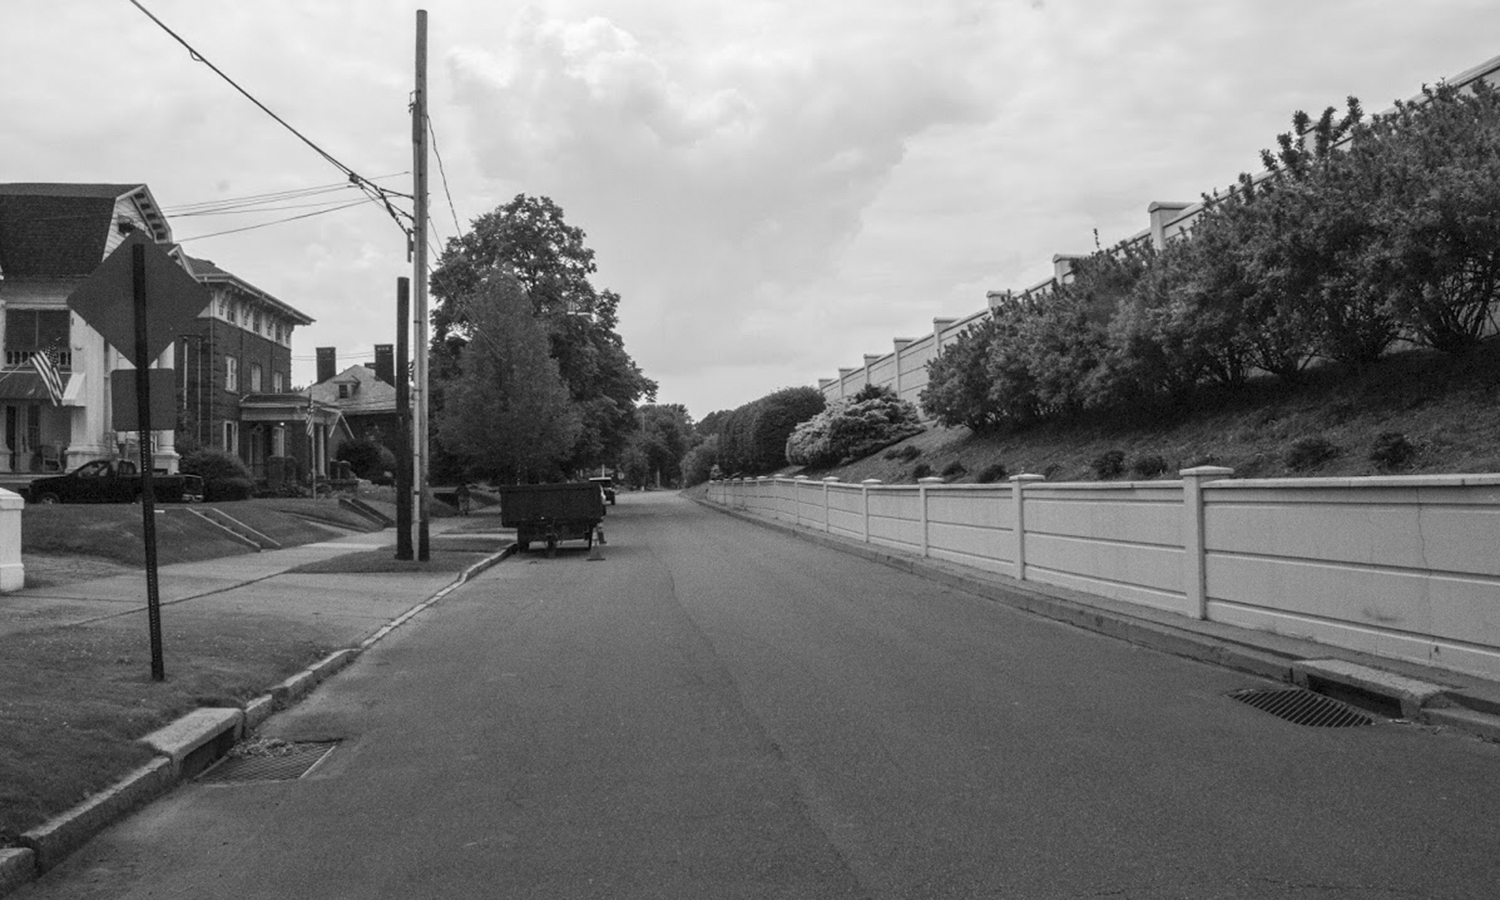 Riverside Drive in Wilkes-Barre, PA, captured by Kate Barilla '23.